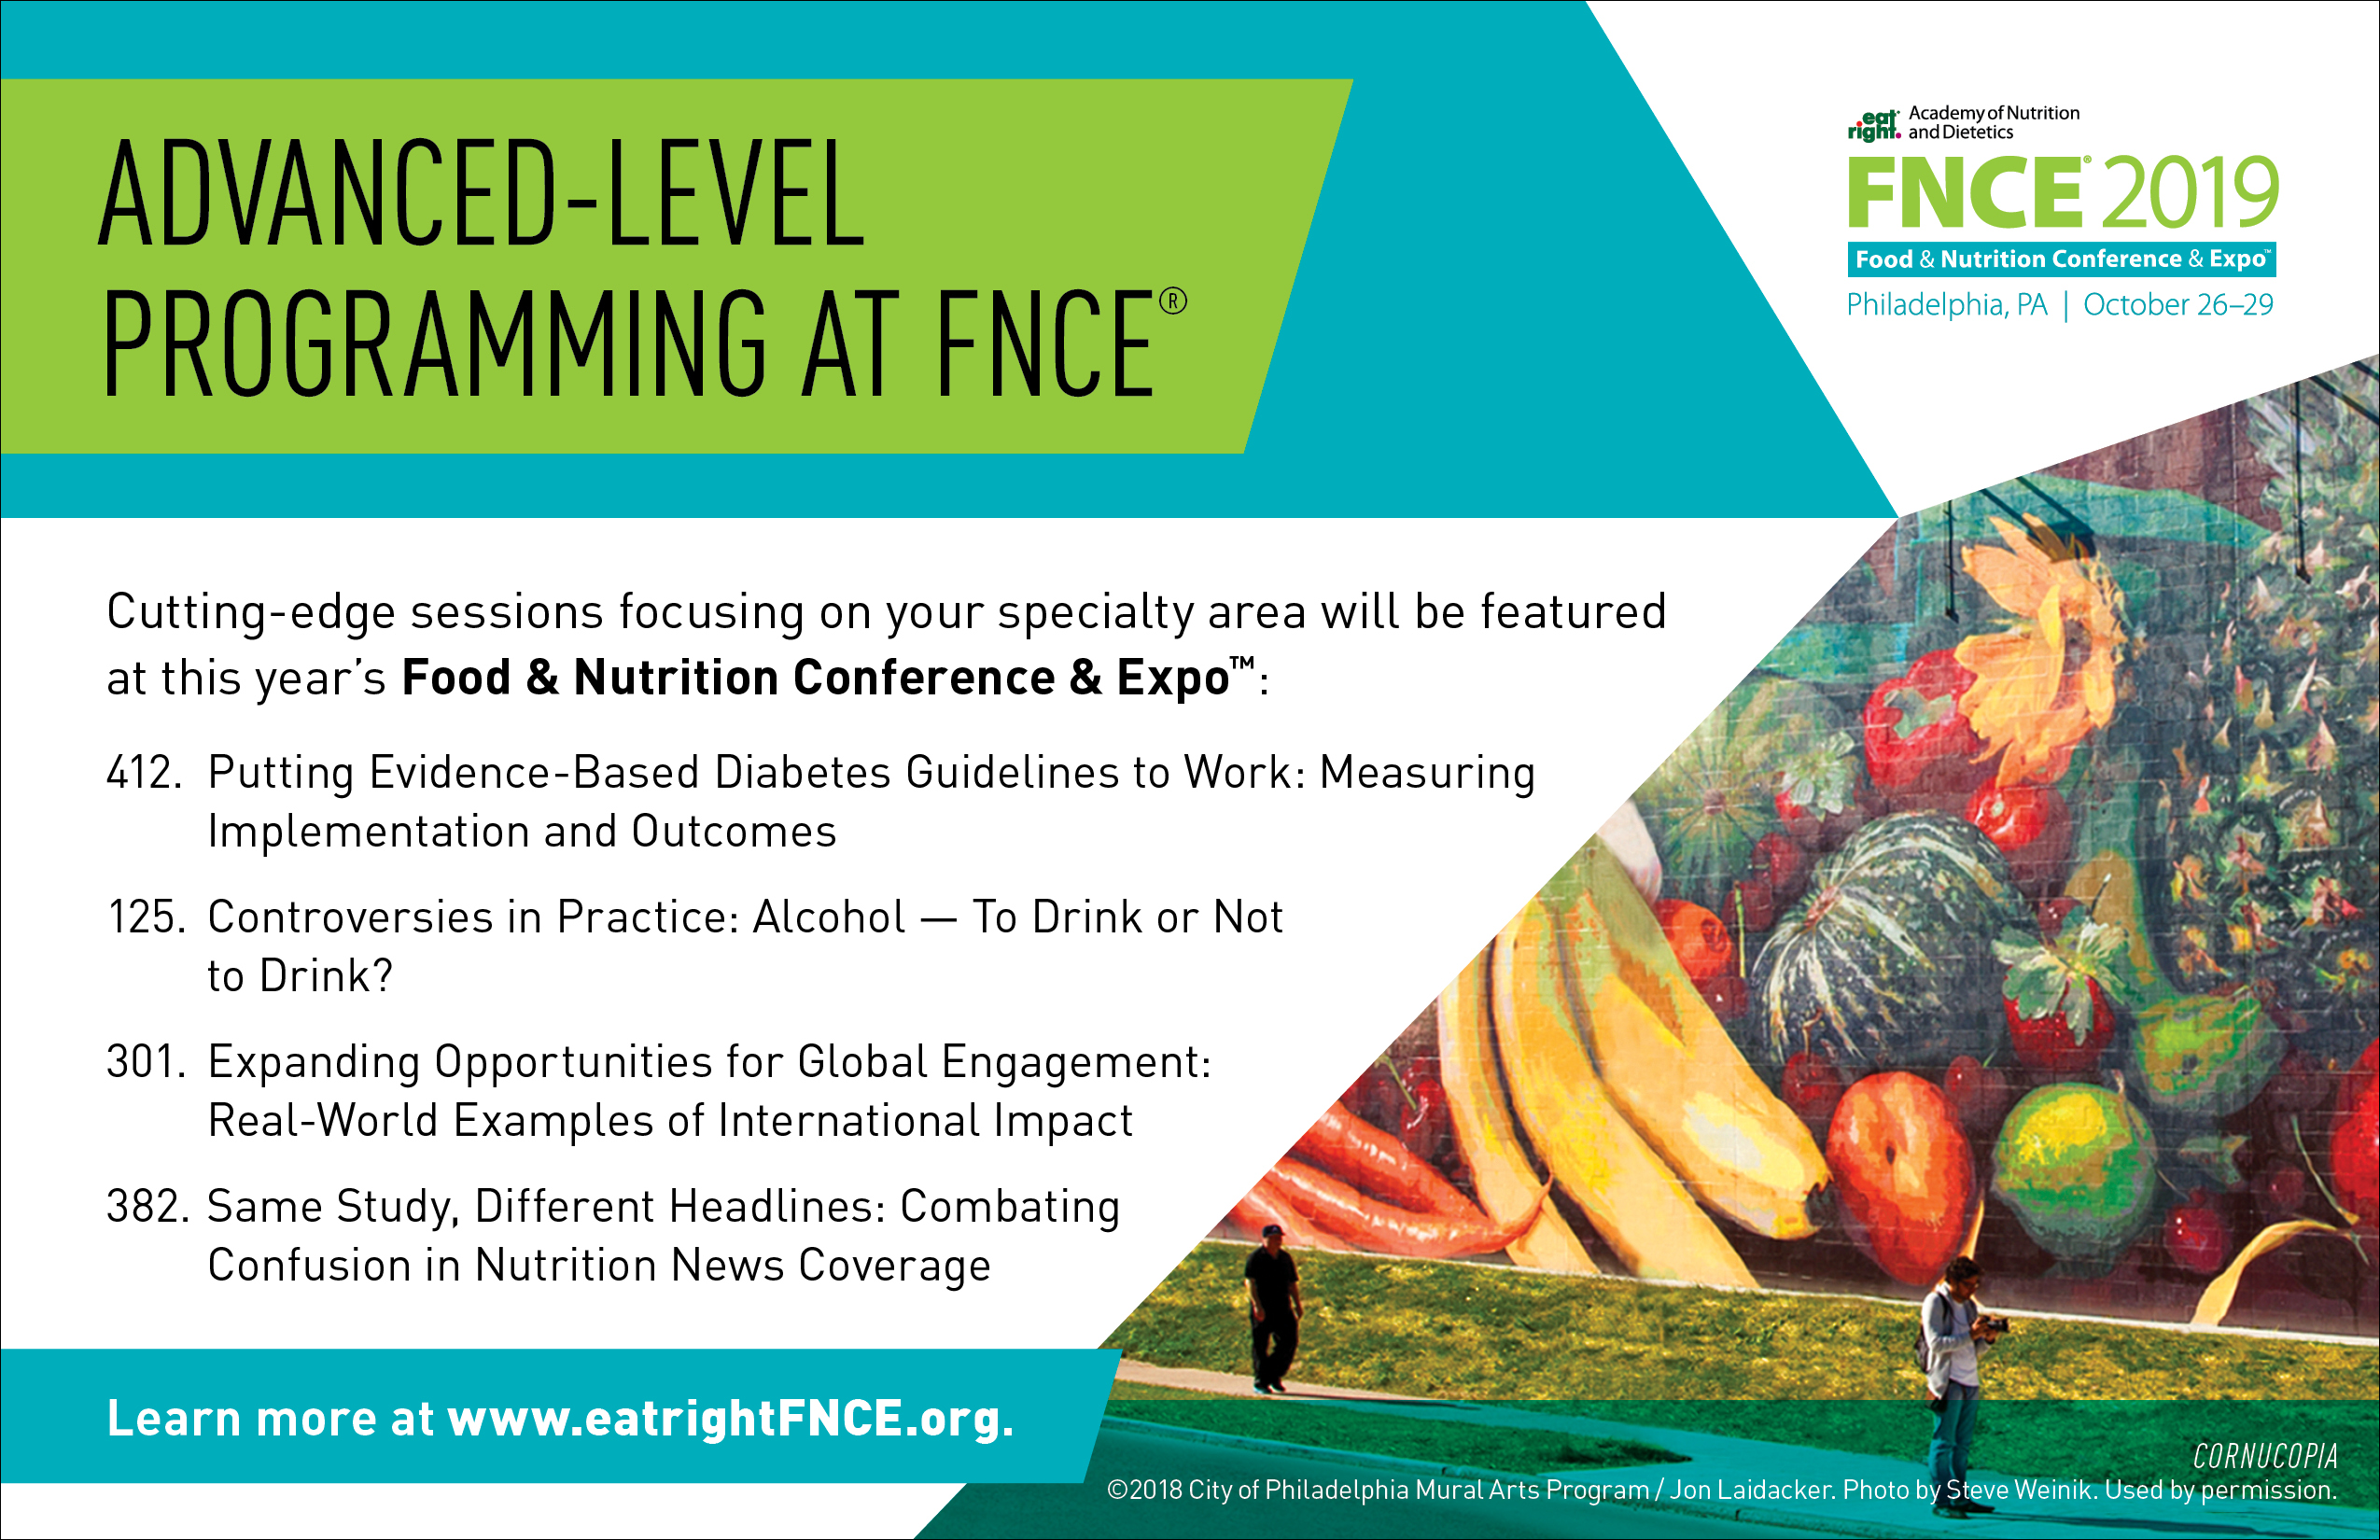 FNCE19 ad for RDPG